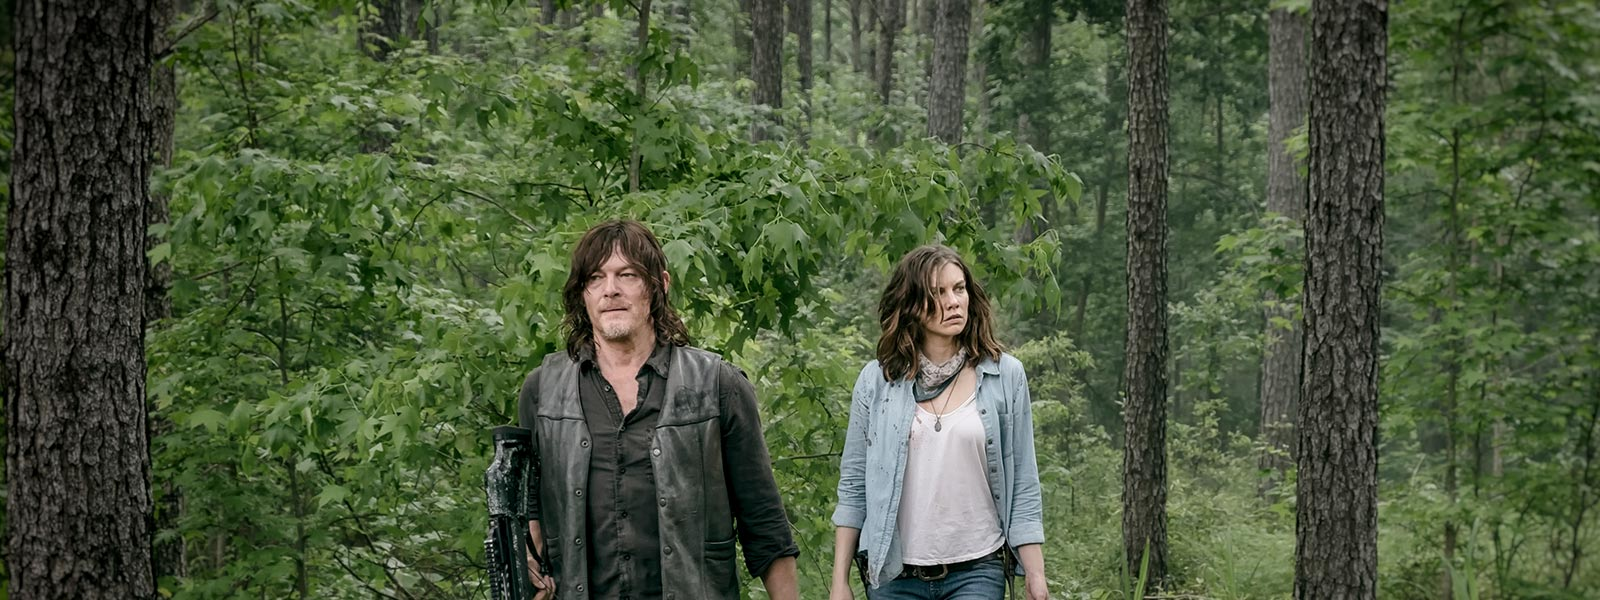 the-walking-dead-episode-903-daryl-reedus-maggie-cohan-pre-800×600